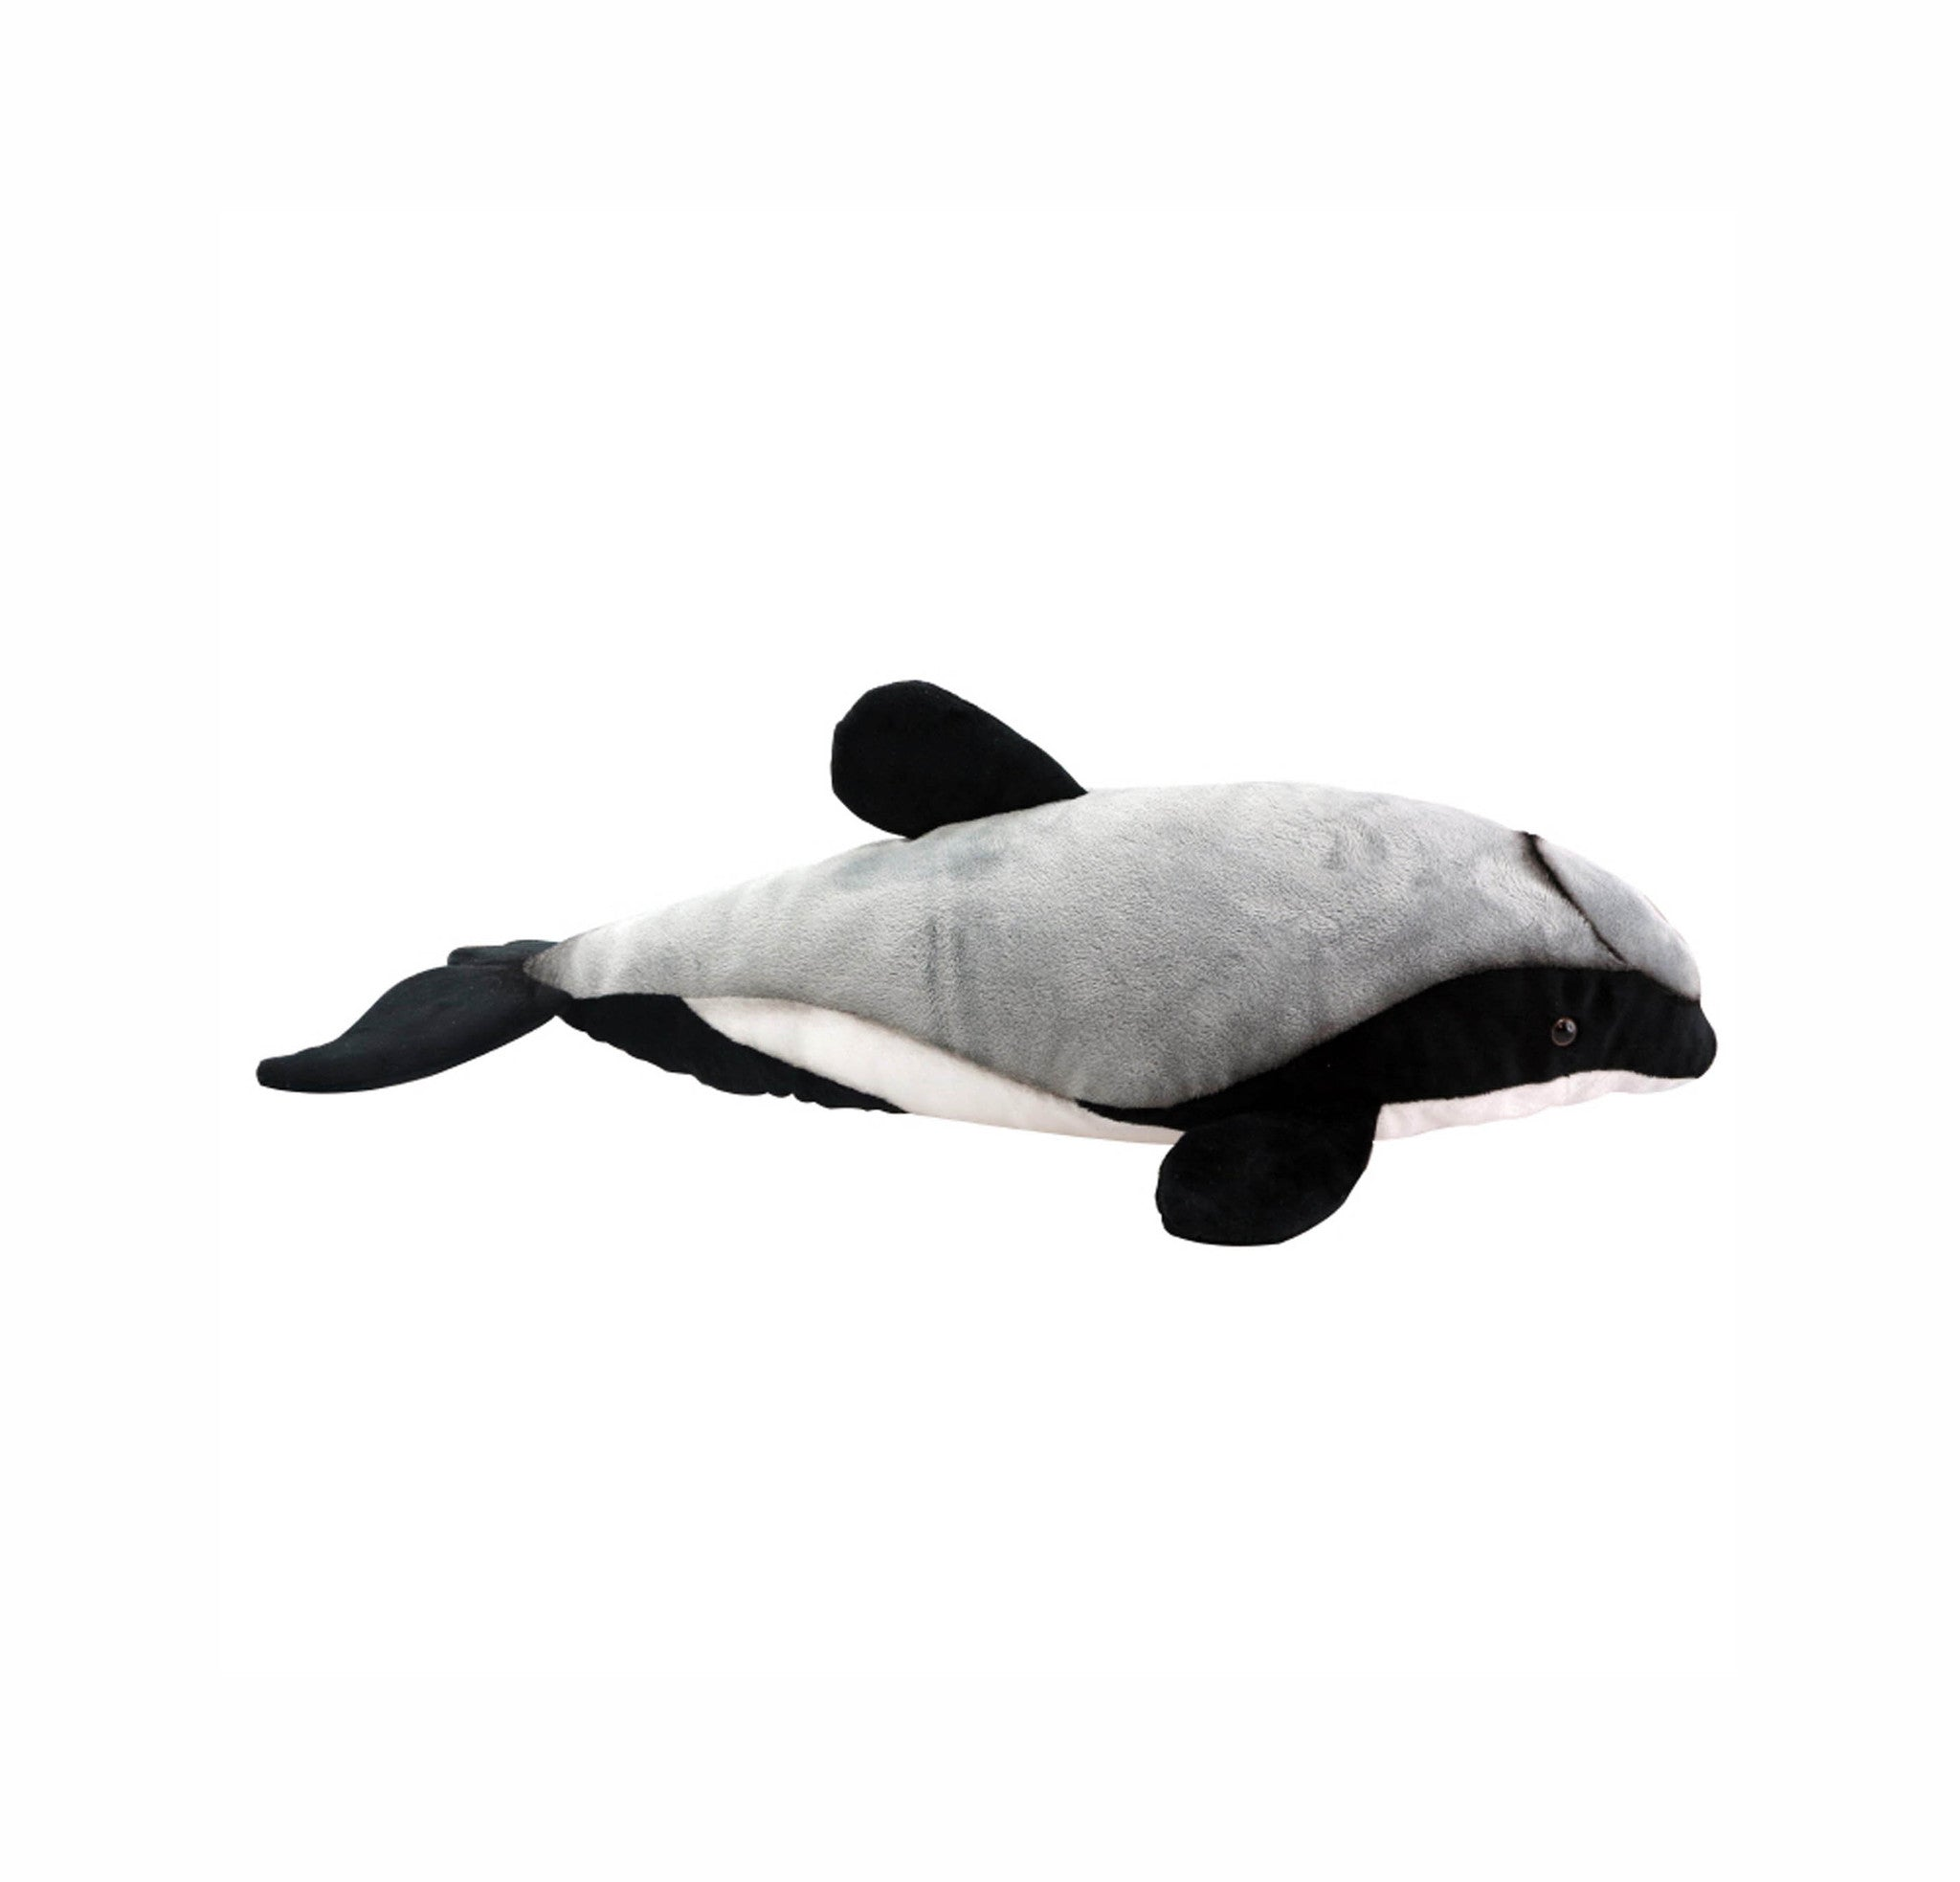 Hector dolphin soft toy with sound